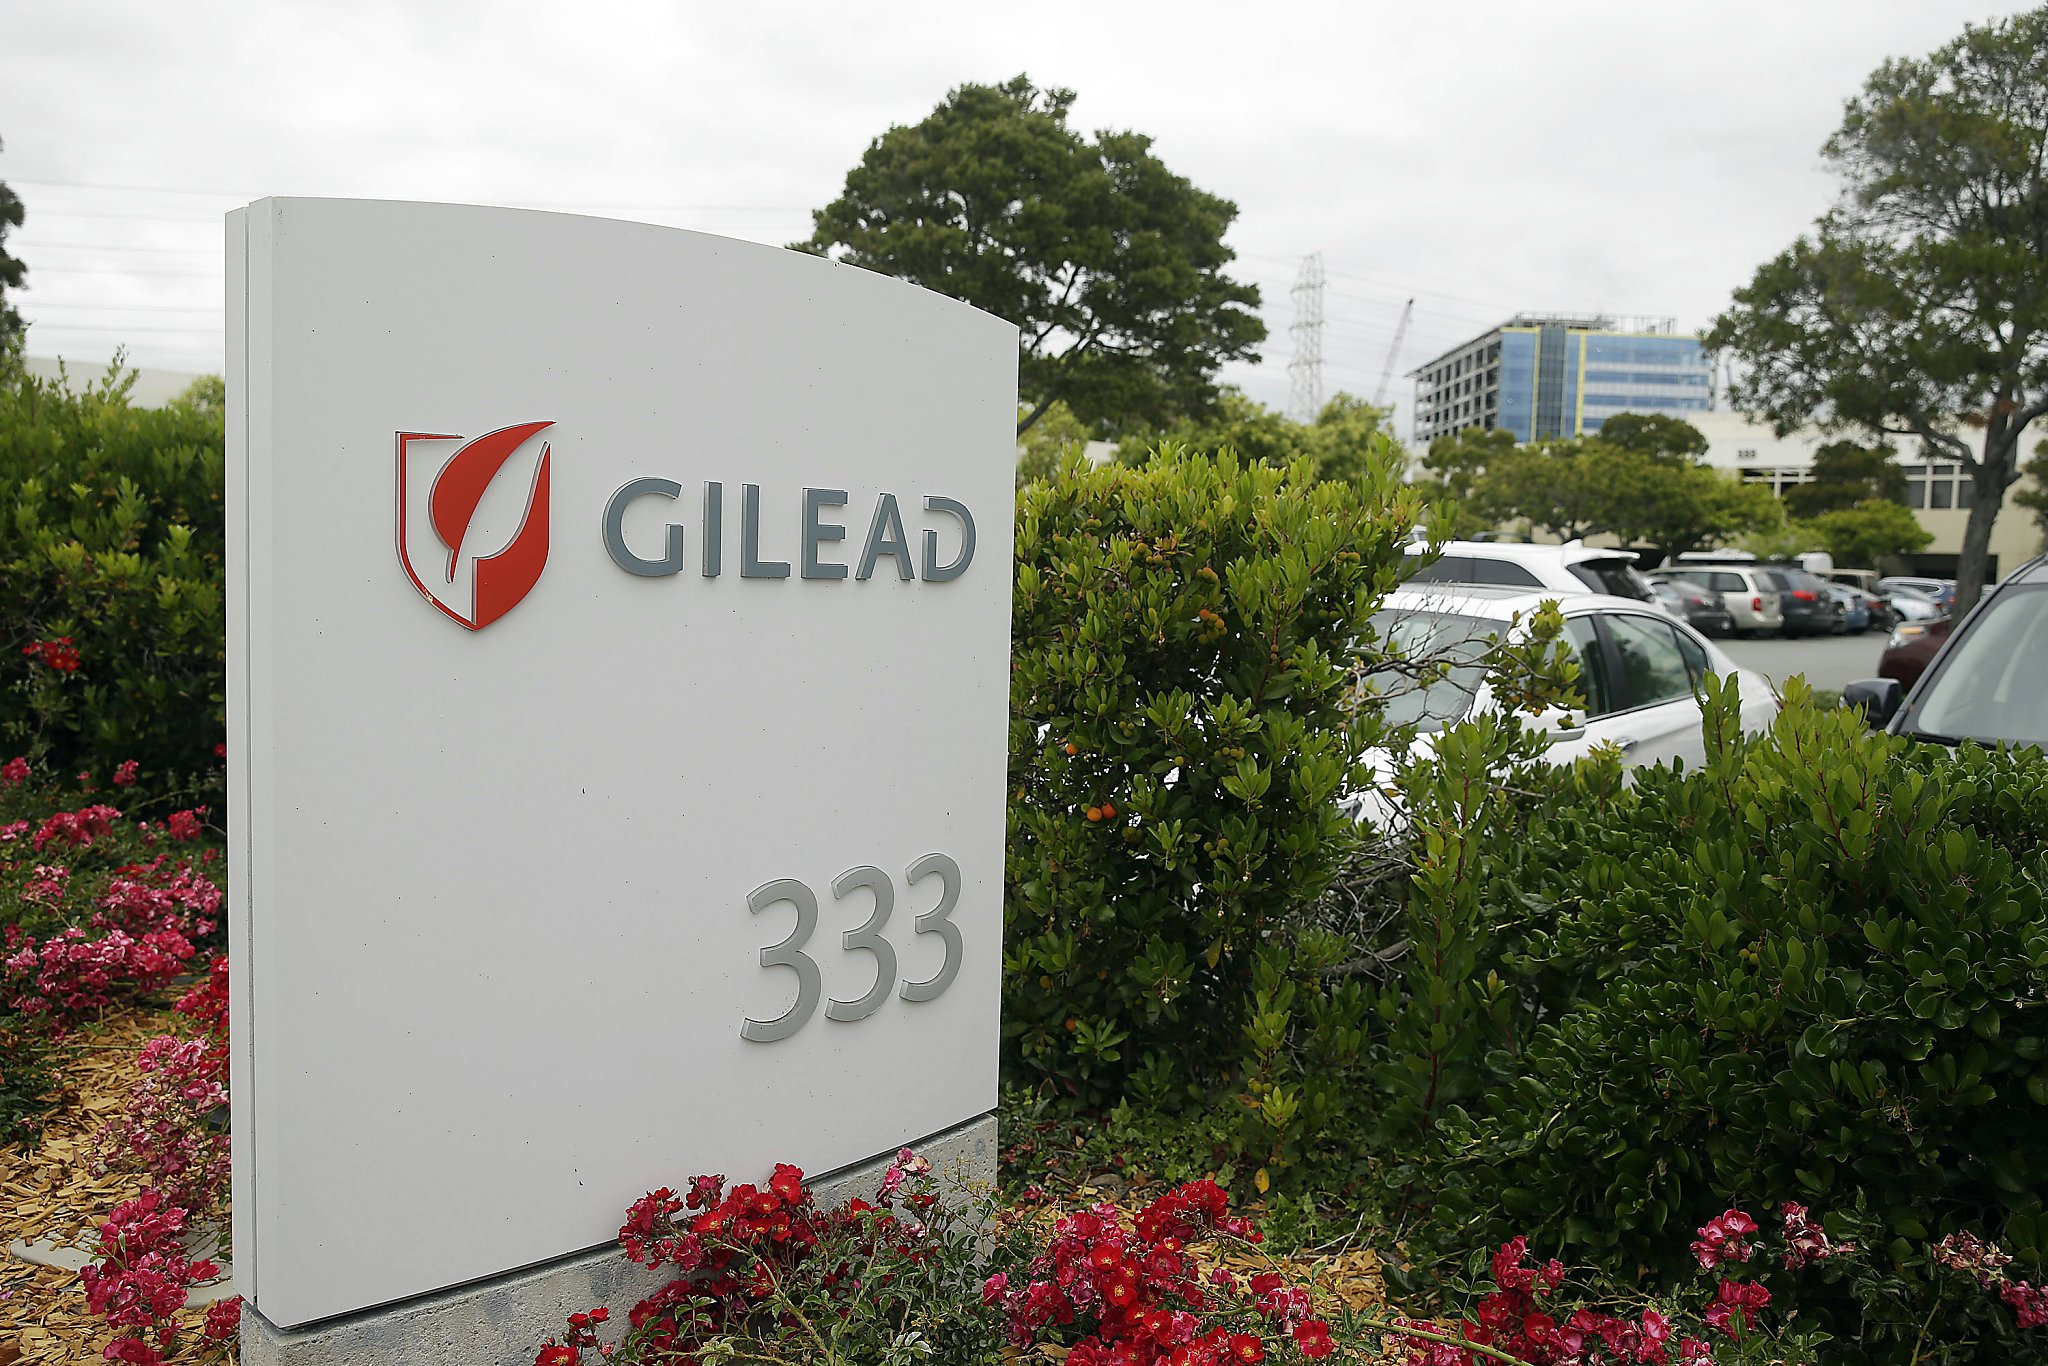 'Game-changer' cancer treatment is focus of Gilead's $12 billion cell therapy deal